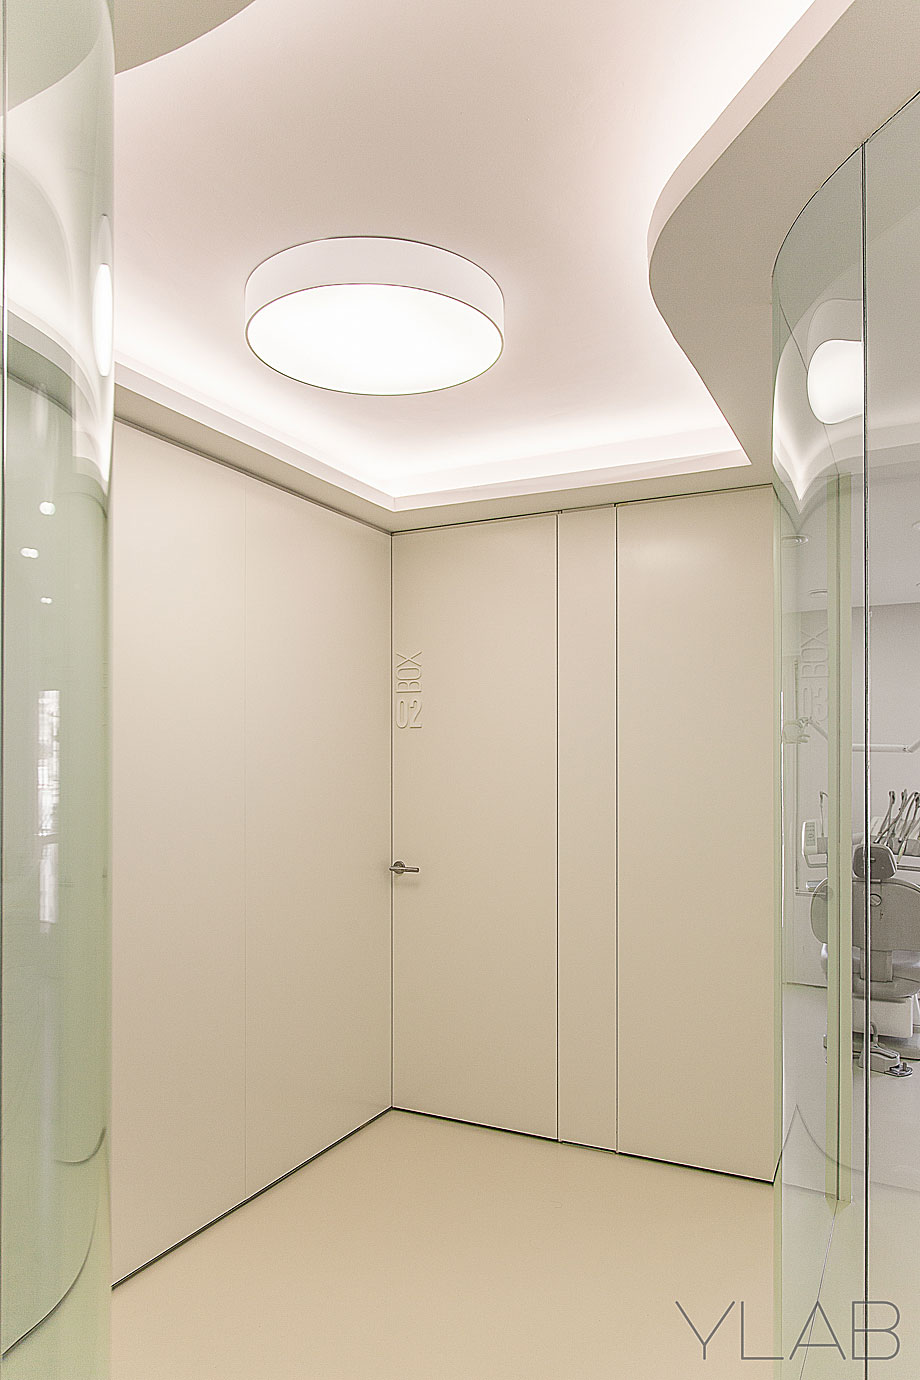 clinica-dental-valles-ylab-arquitectos (11)